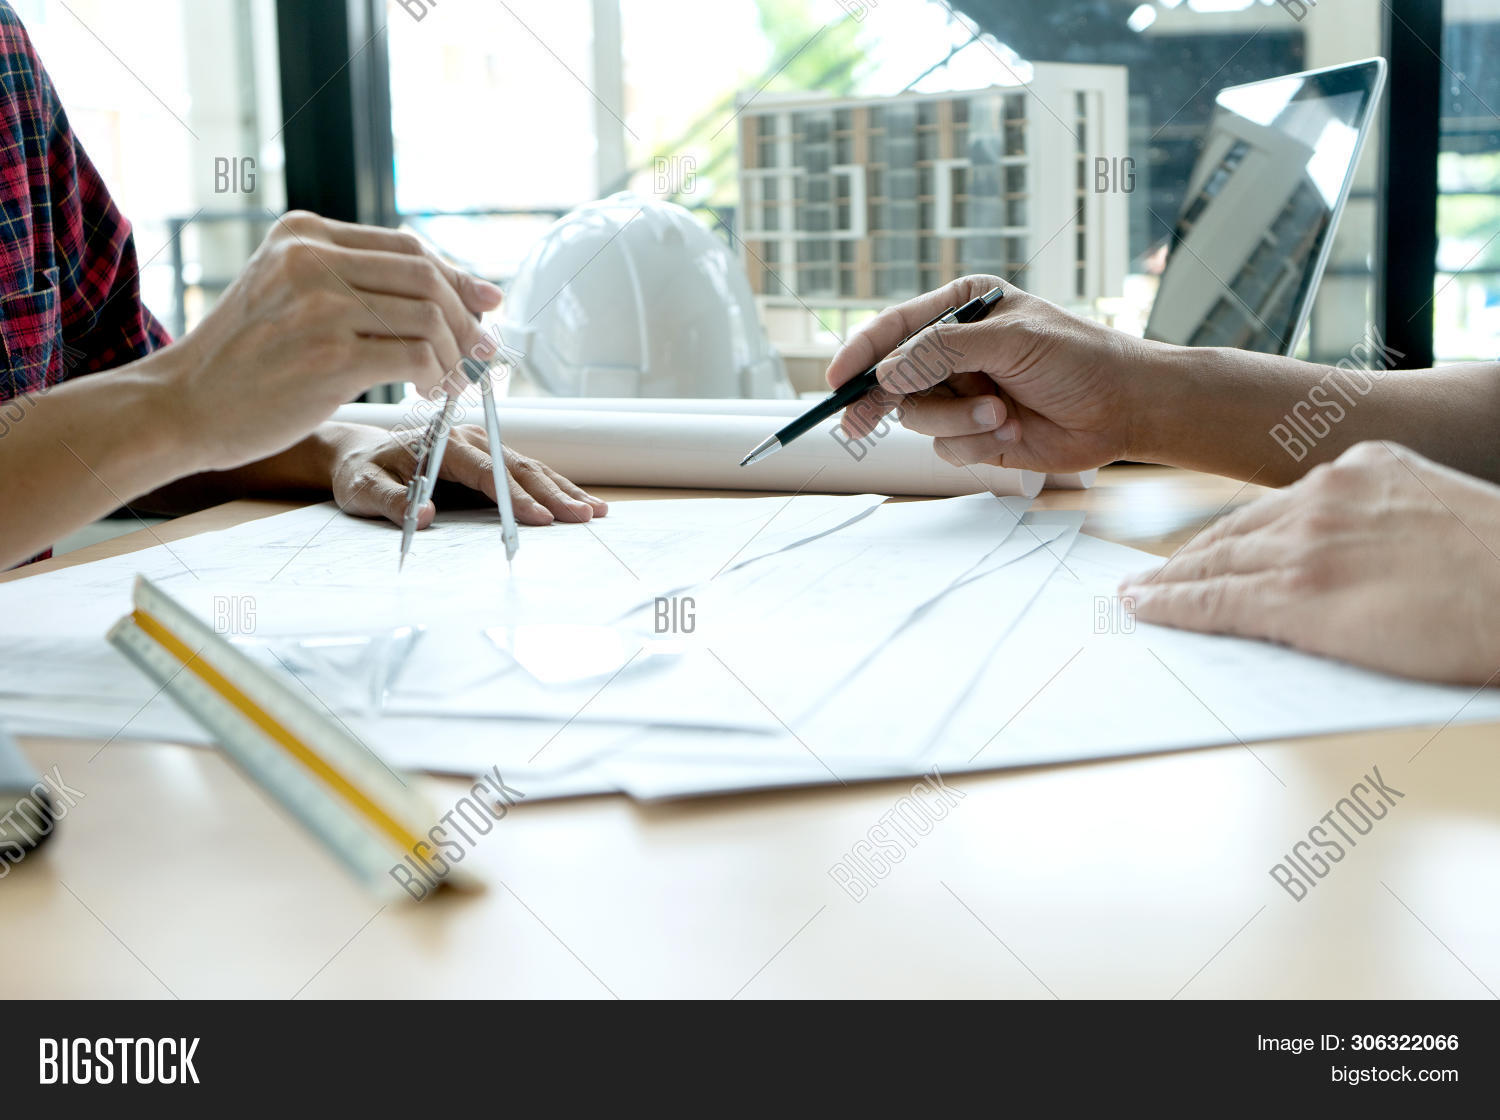 Engineer Or Architectural Project, Two Engineering Or Architect